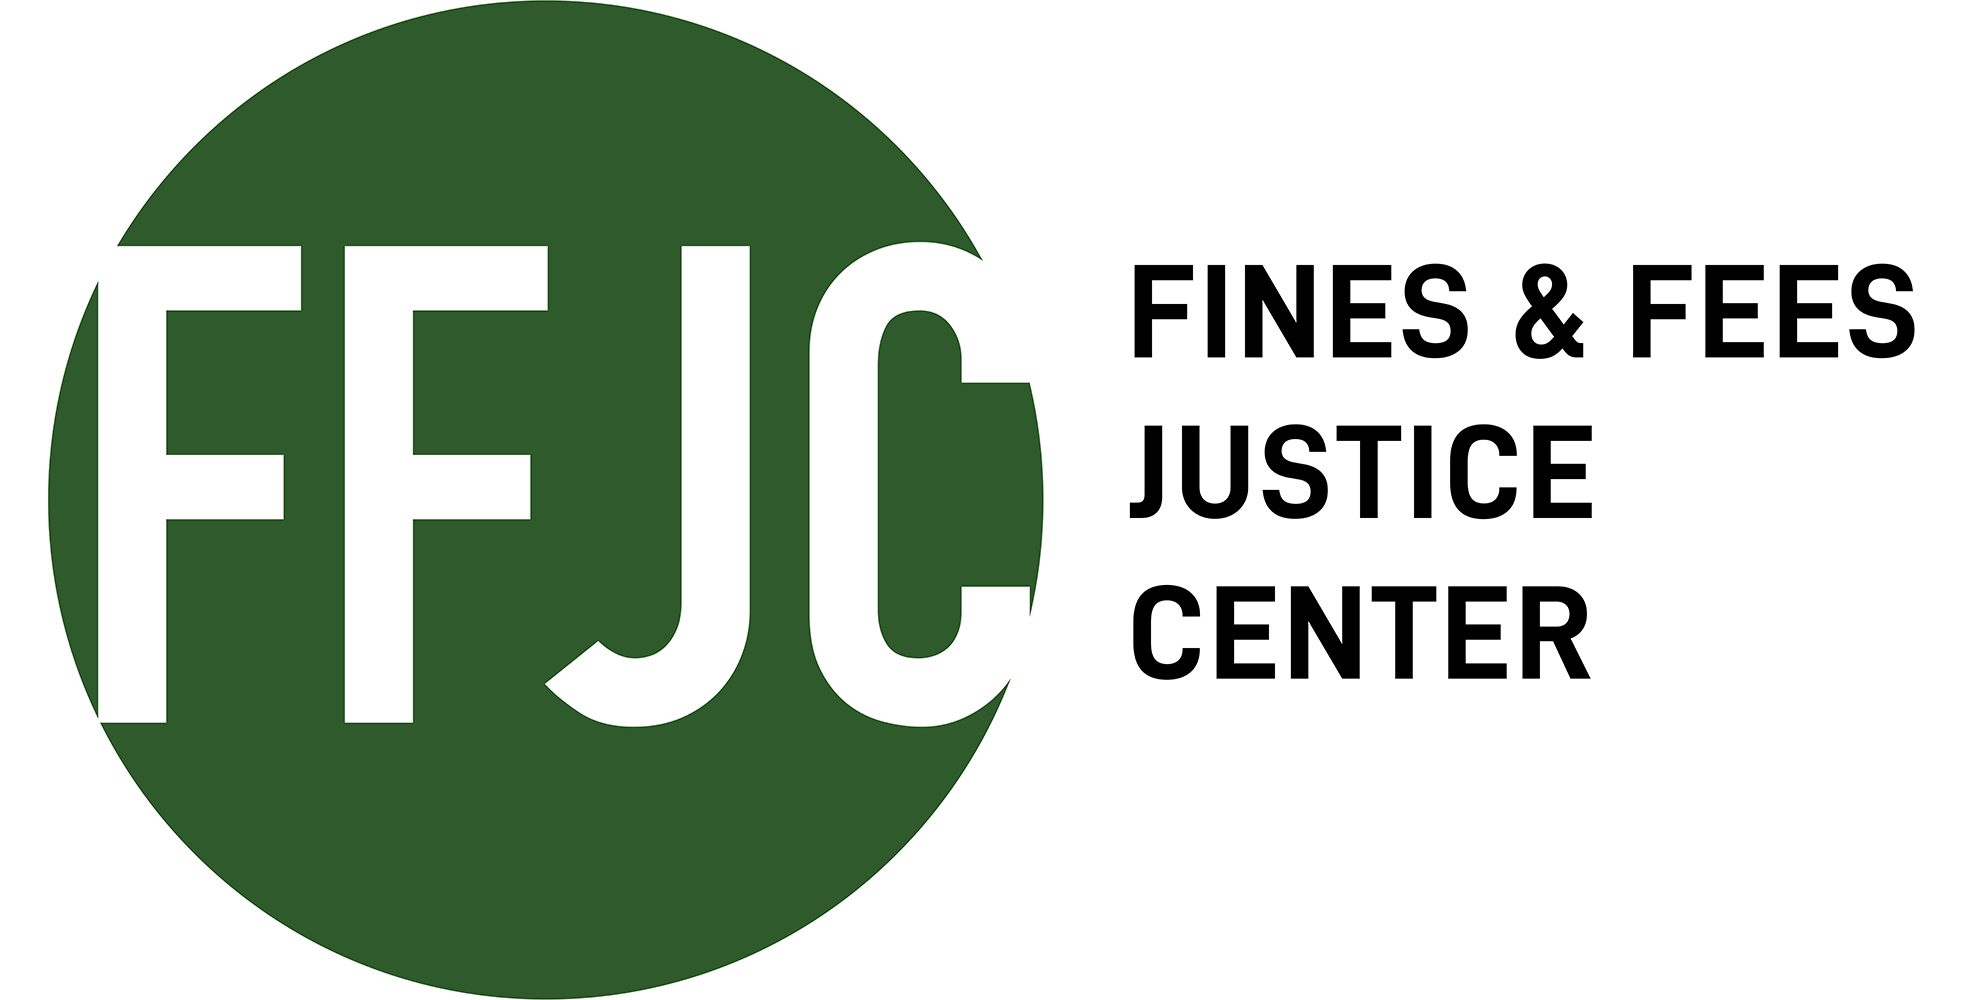 Fines and Fees Justice Center